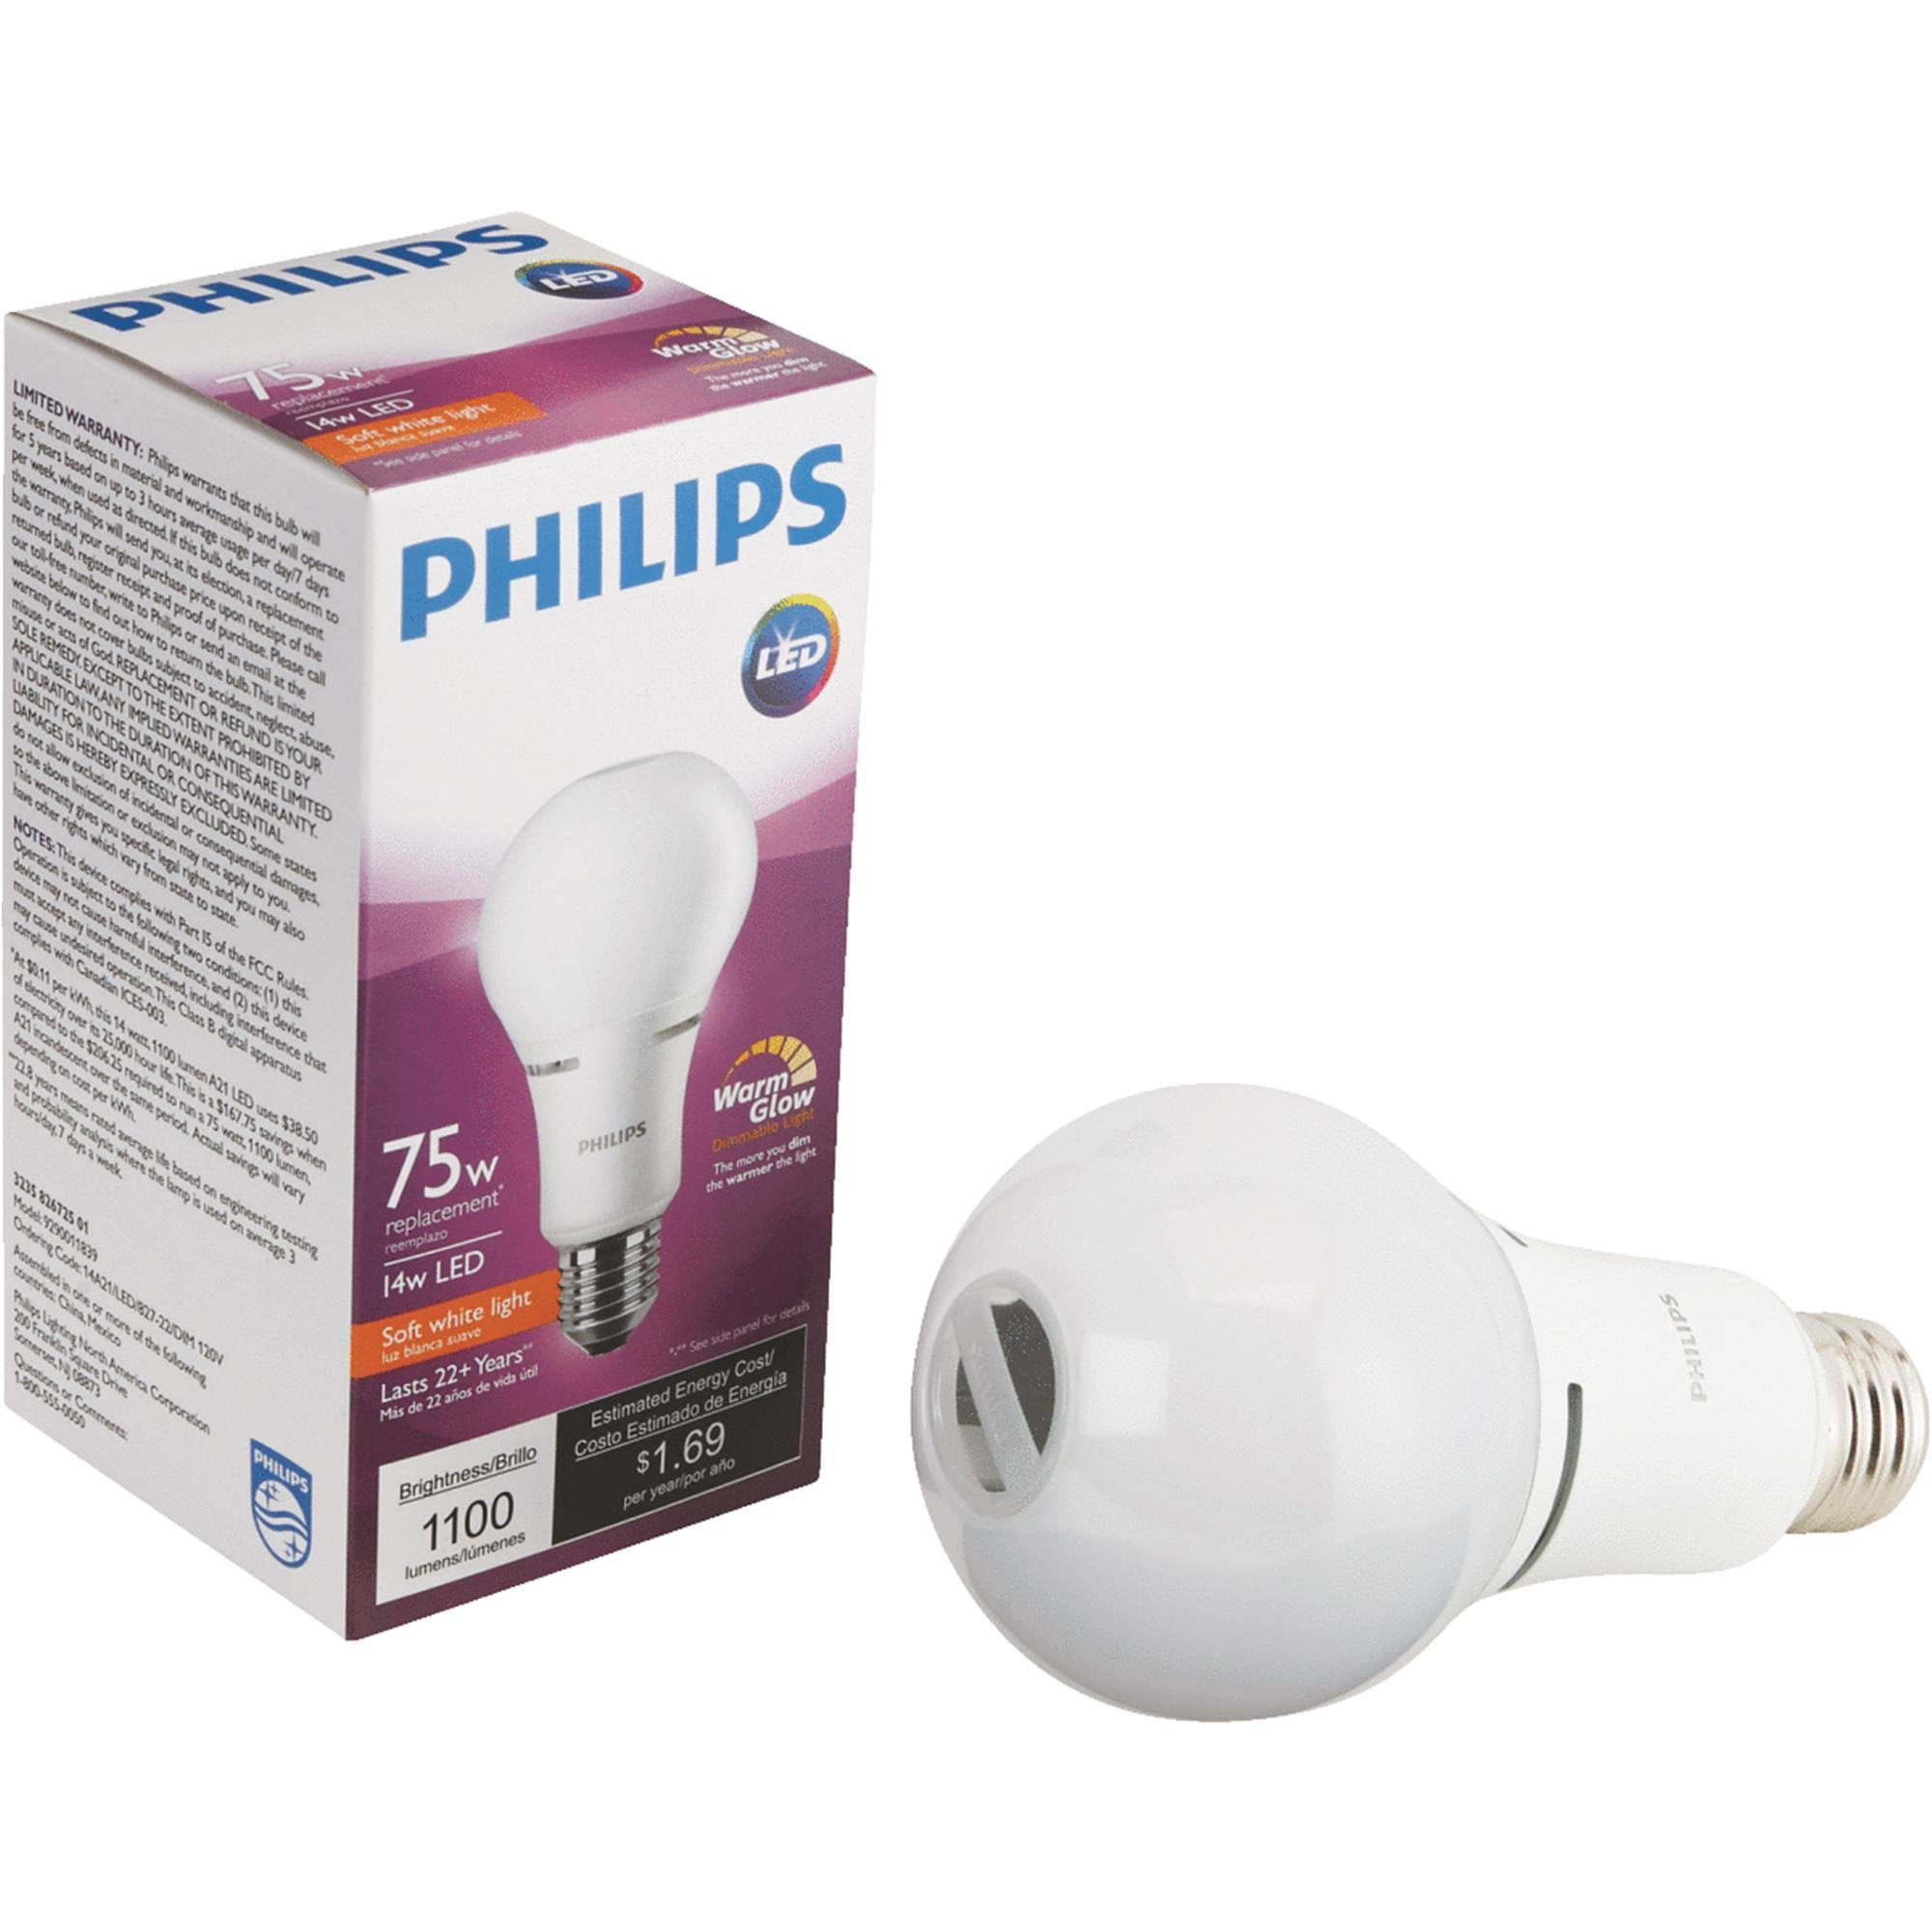 Philips Lighting Led Bulb - 12W, A21